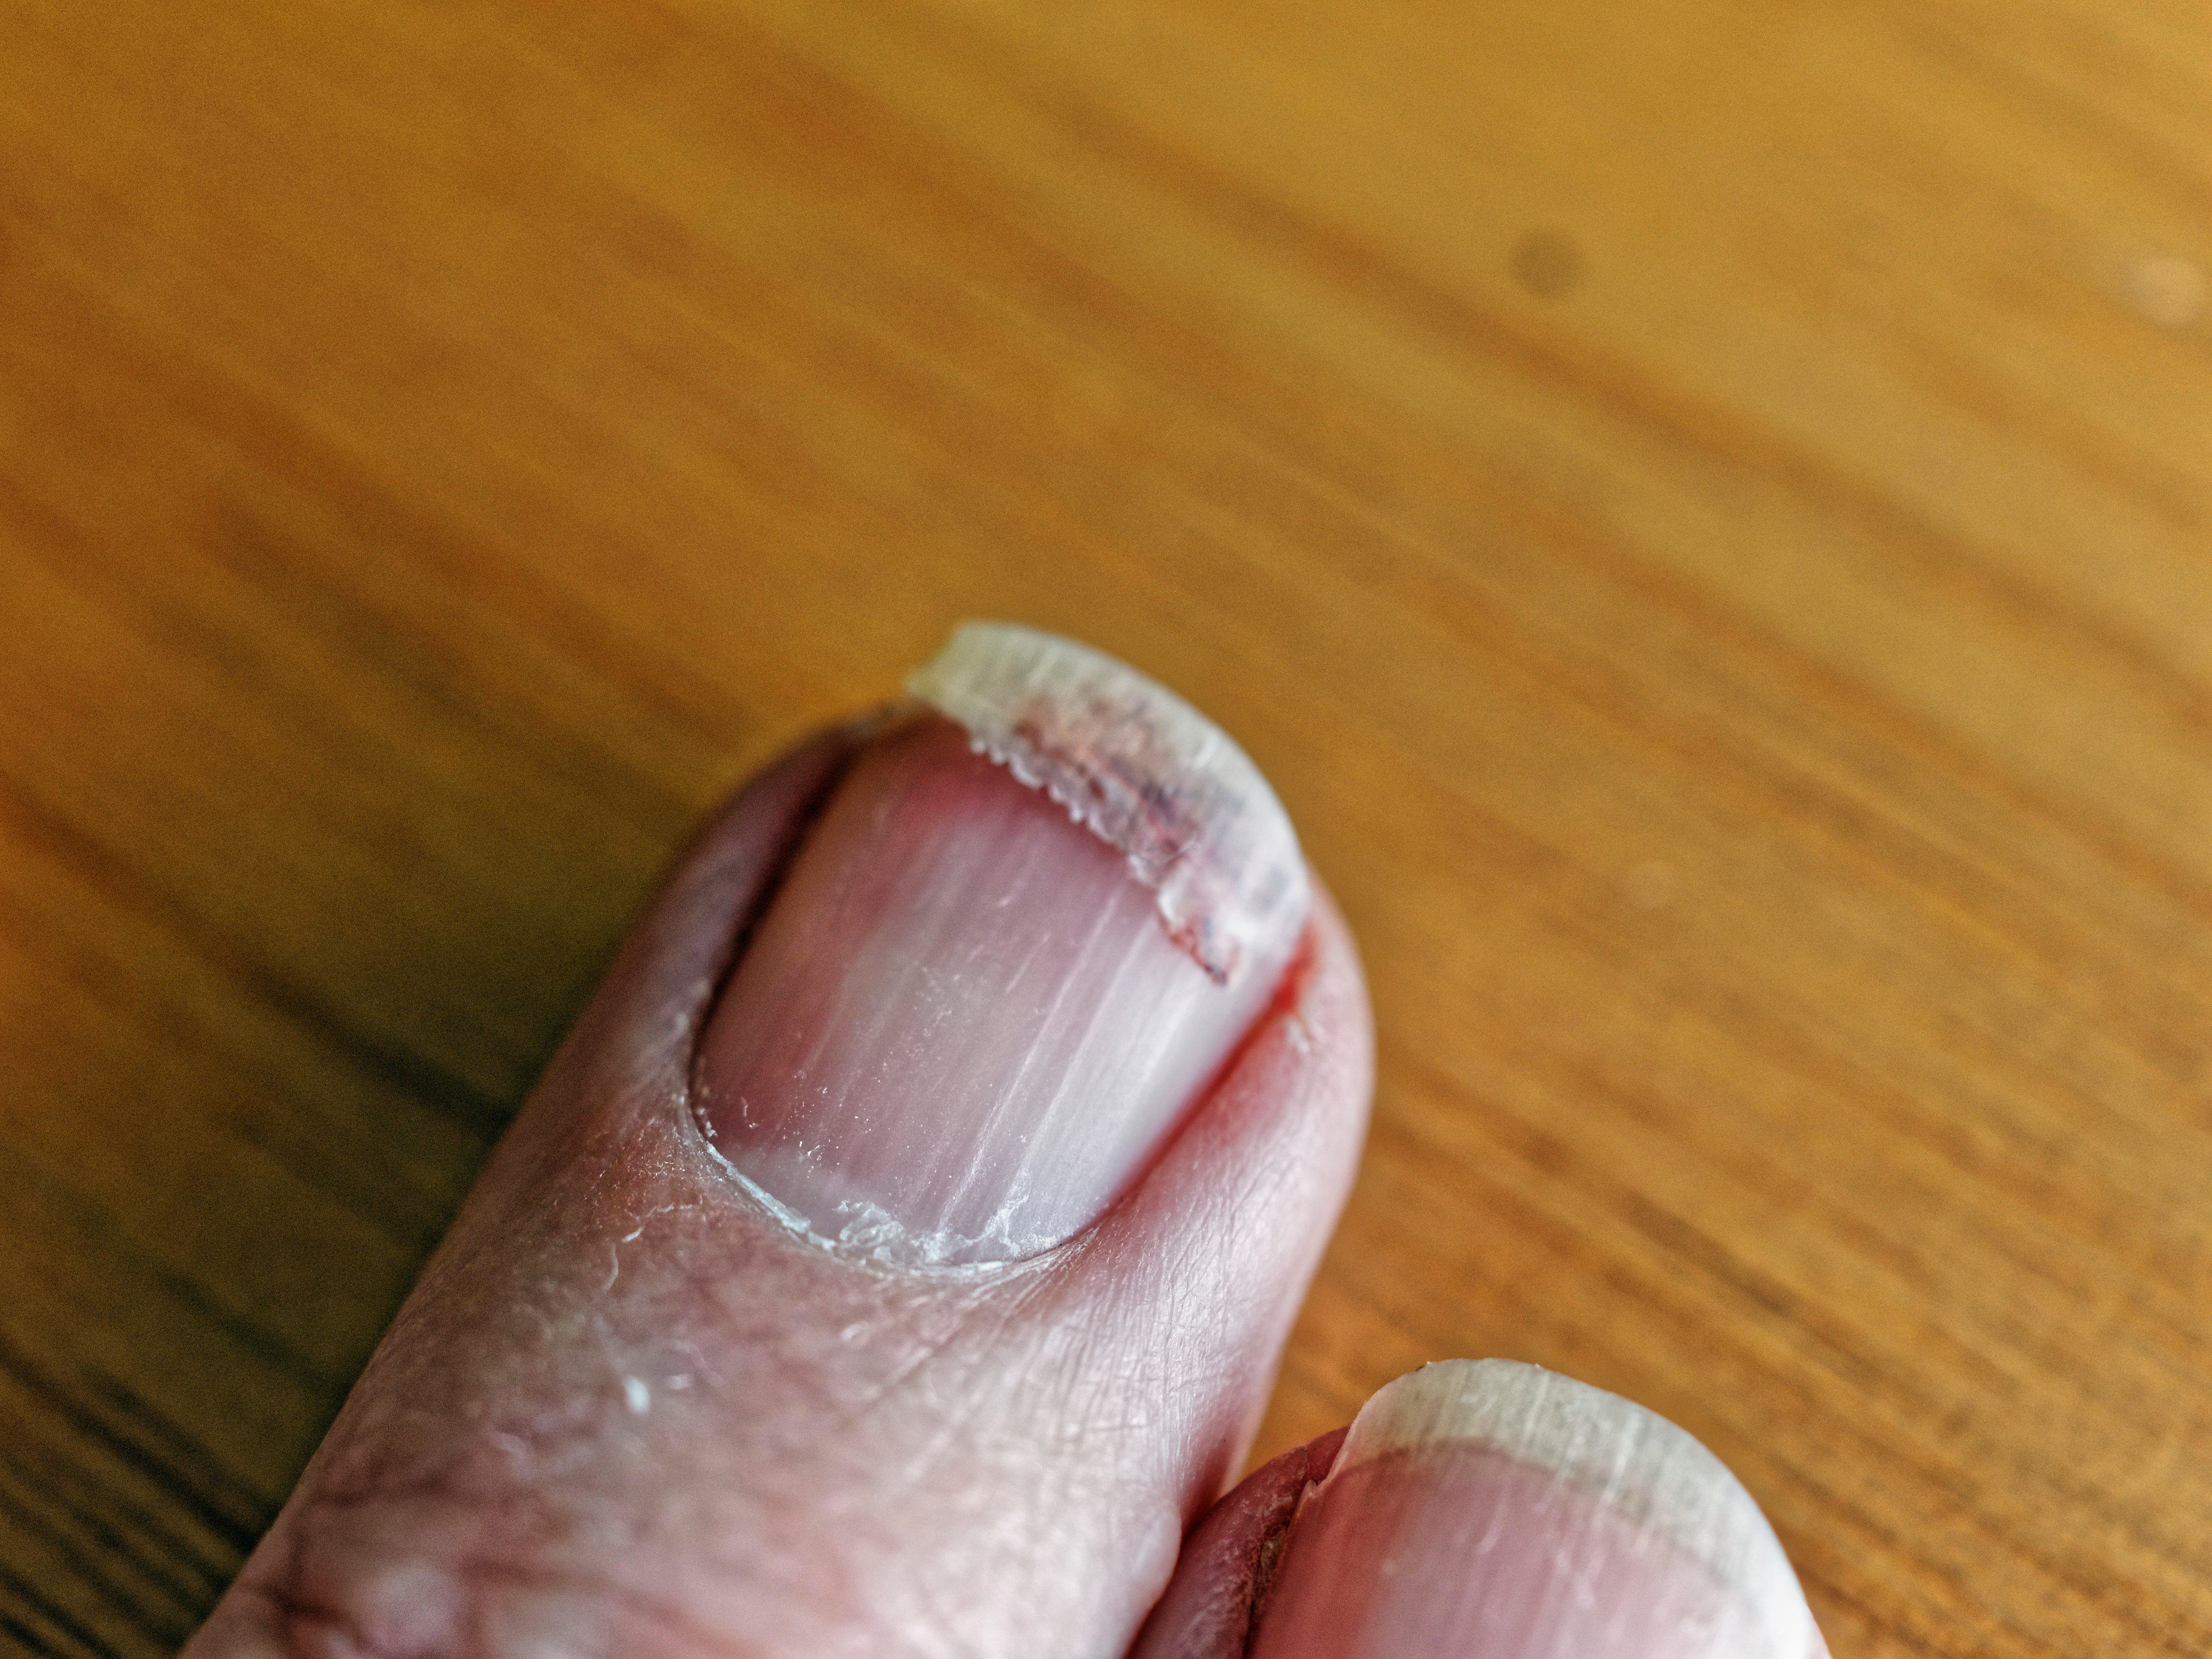 Fingernail-injury-5.jpeg